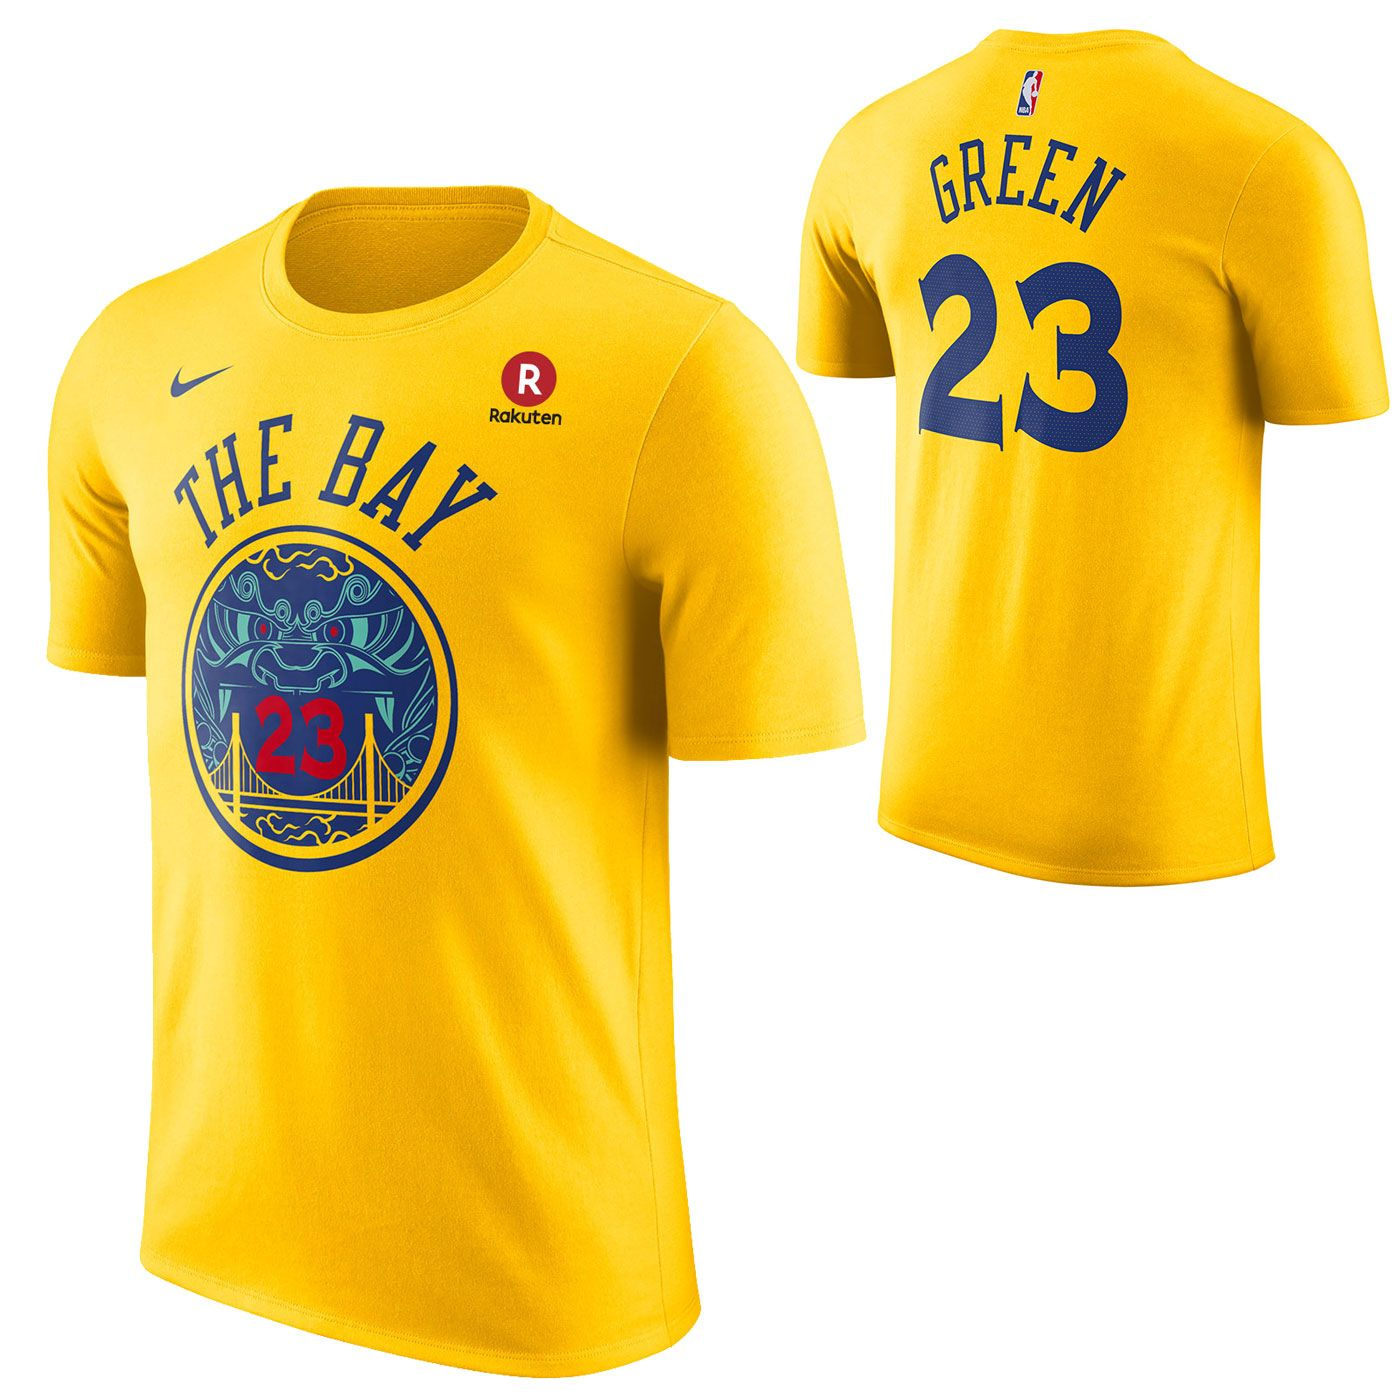 1aec7e8964a Golden State Warriors Nike Dri-FIT Men s City Edition Draymond Green  23  Chinese Heritage Game Time Name   Number Tee - Gold